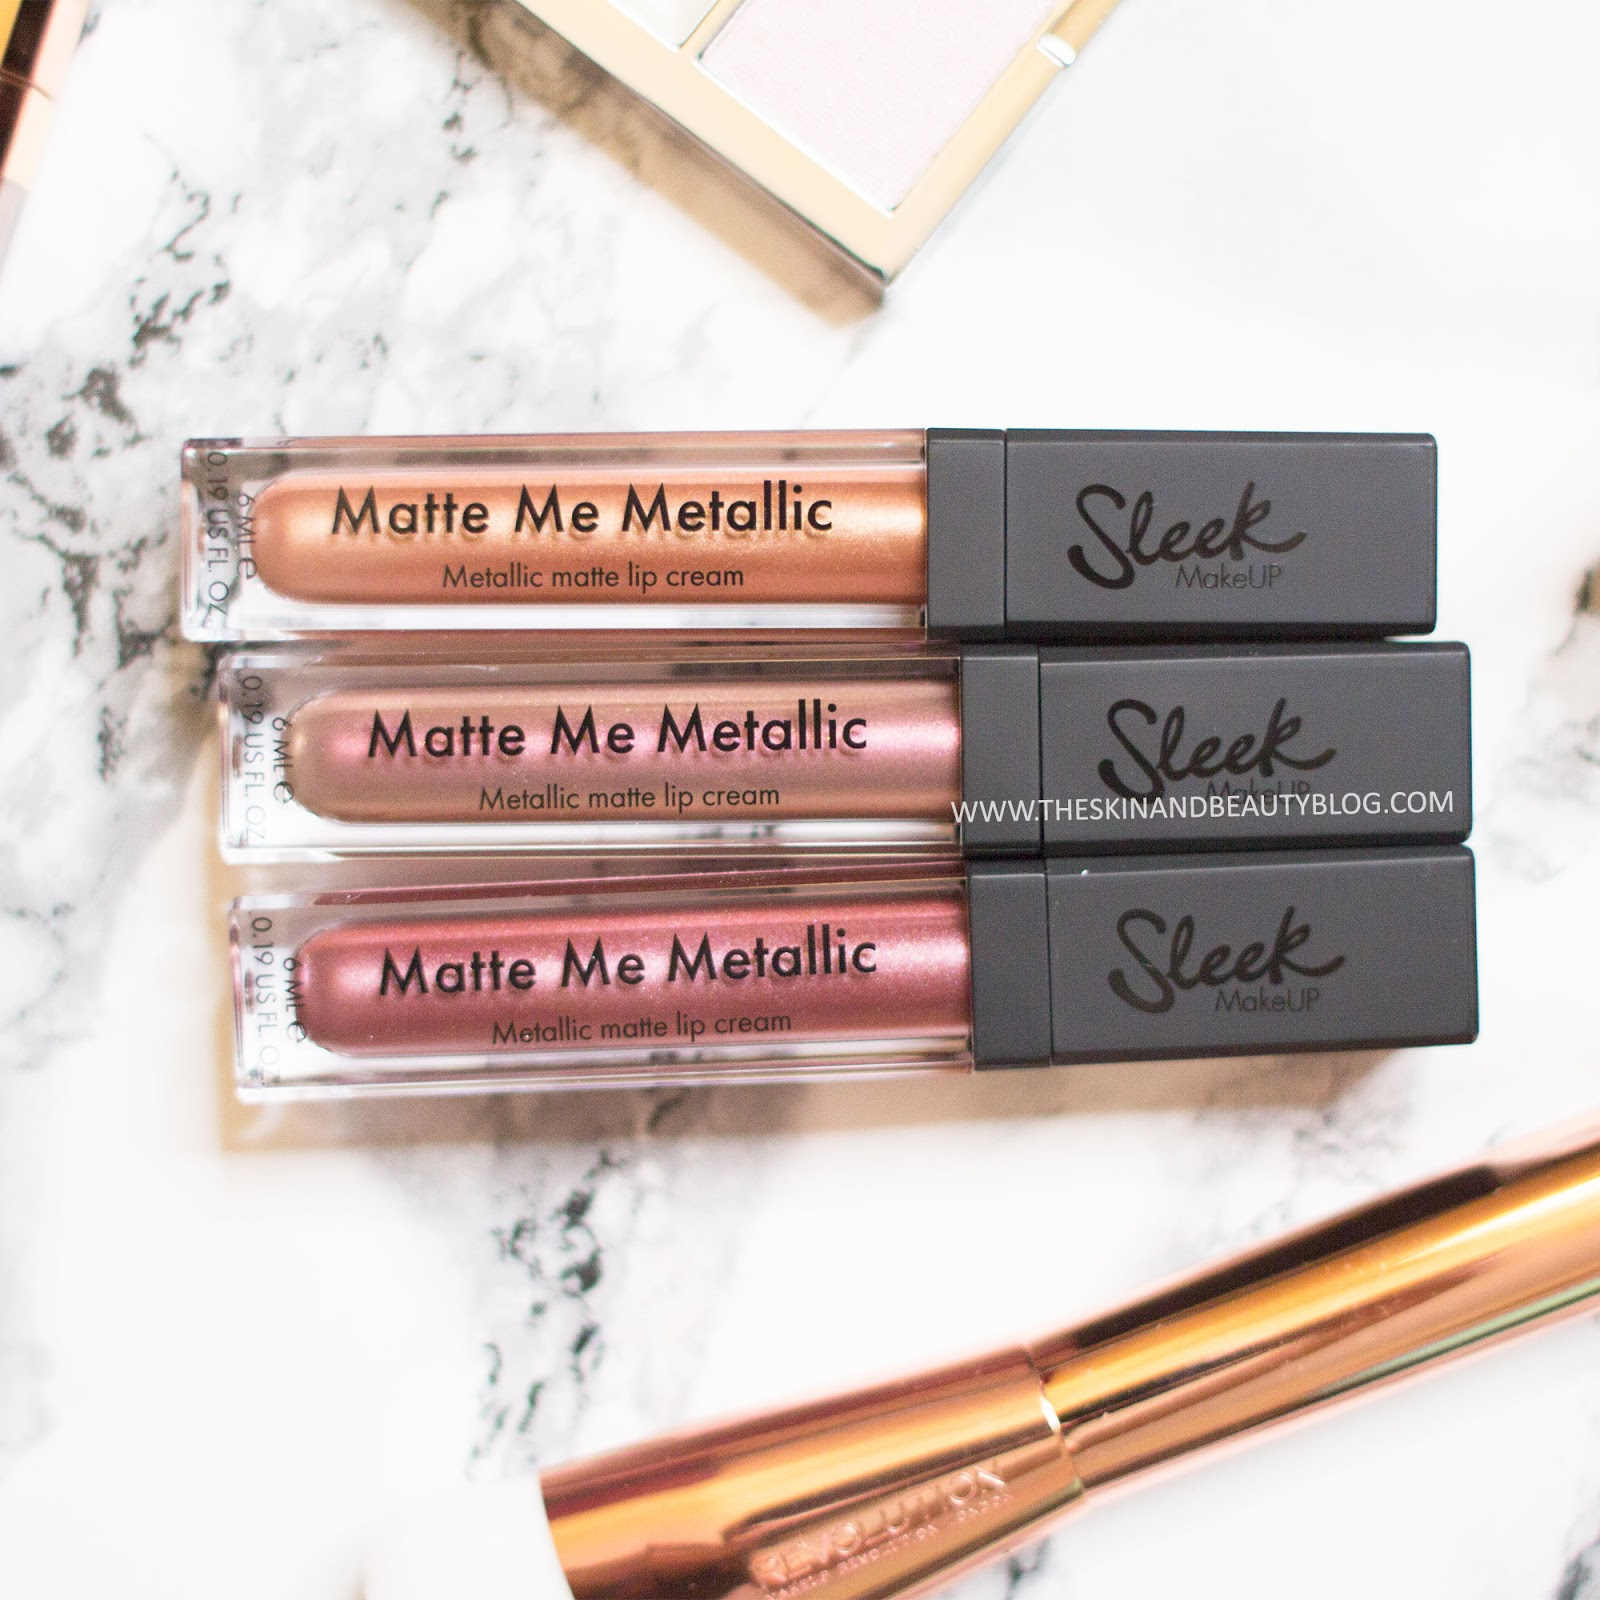 Sleek Makeup Matte Me Metallic Lip Creams Roman Copper, Volcanic, Rusted Rose Review Swatches